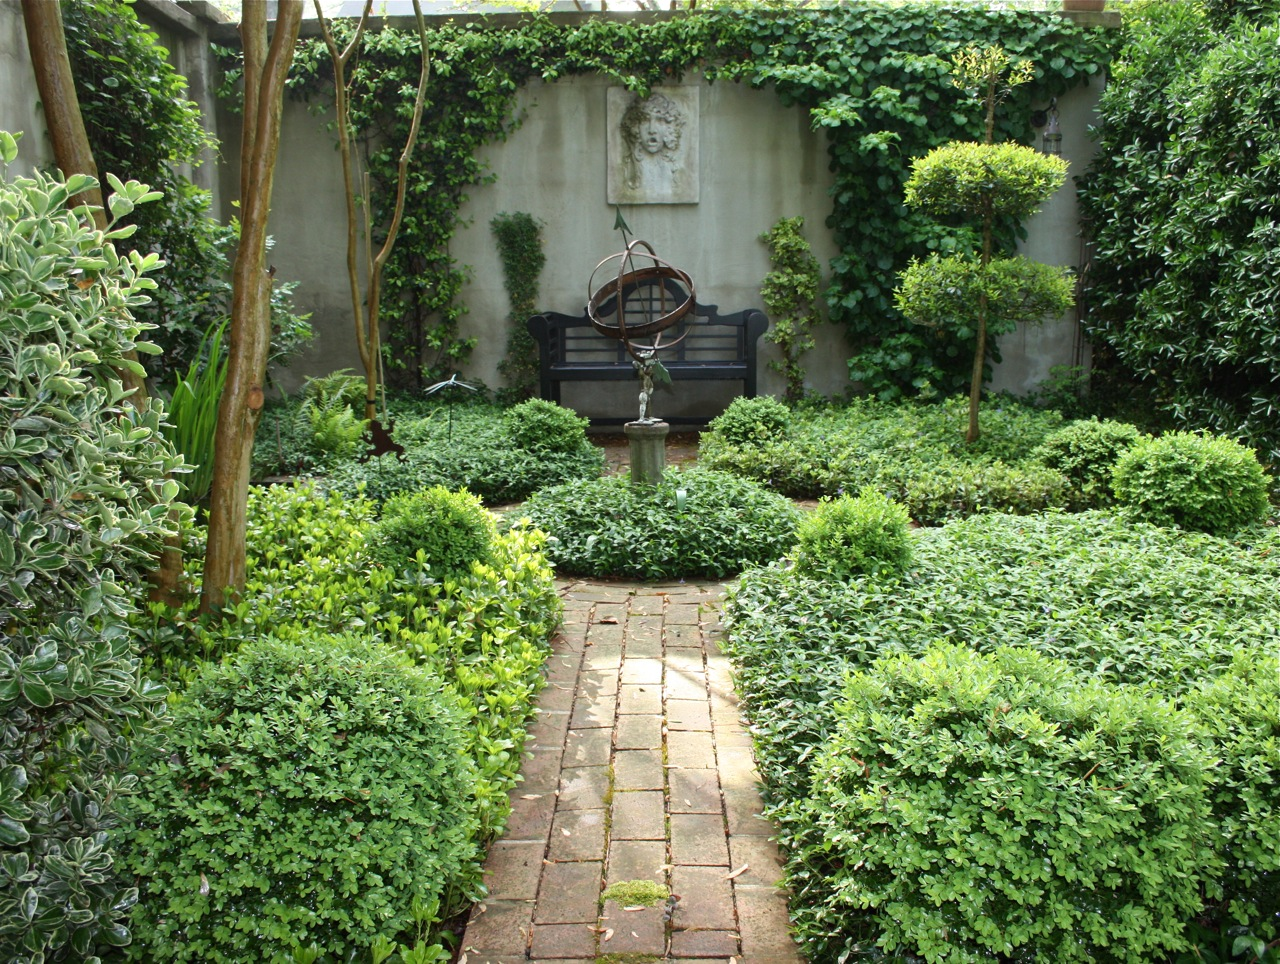 A curious gardener southern courtyard gardens for Courtyard landscape design